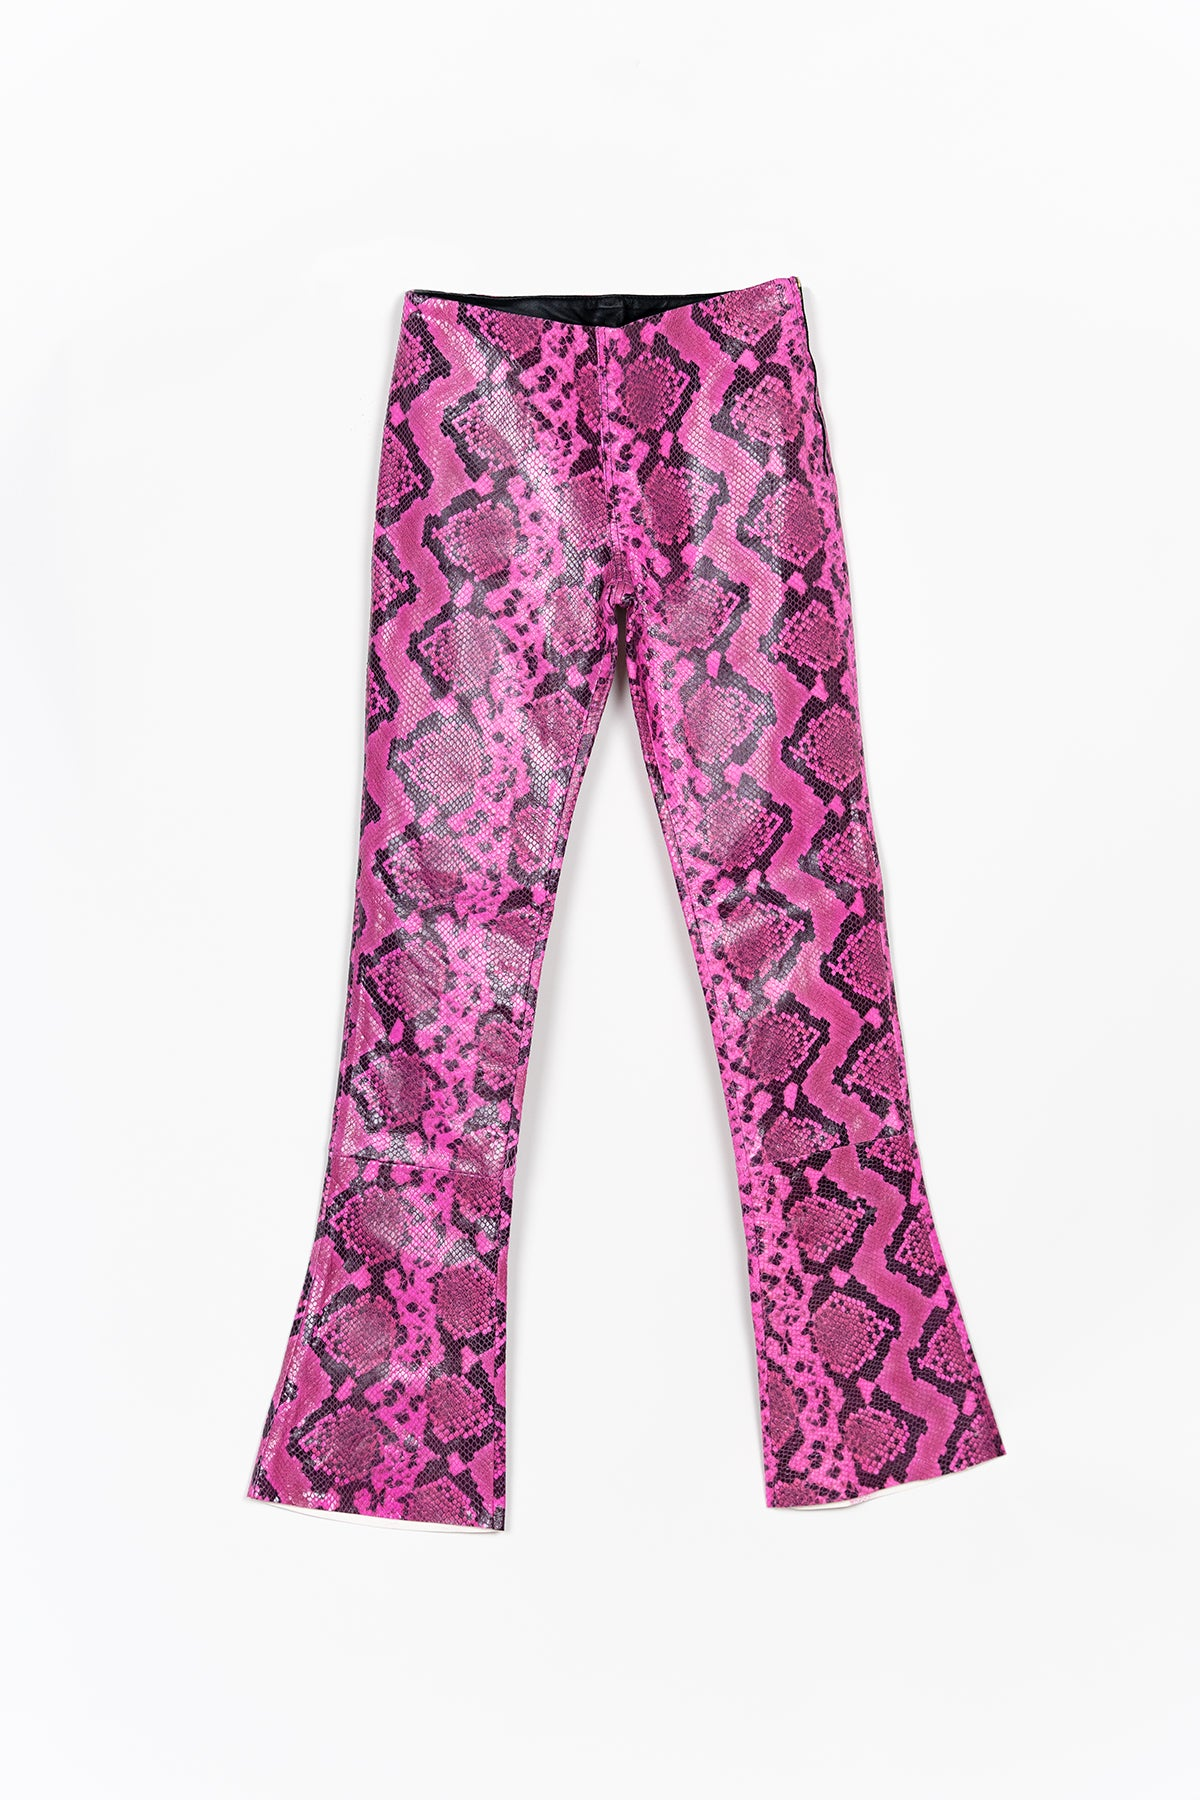 PINK BOOTCUT LEATHER TROUSER